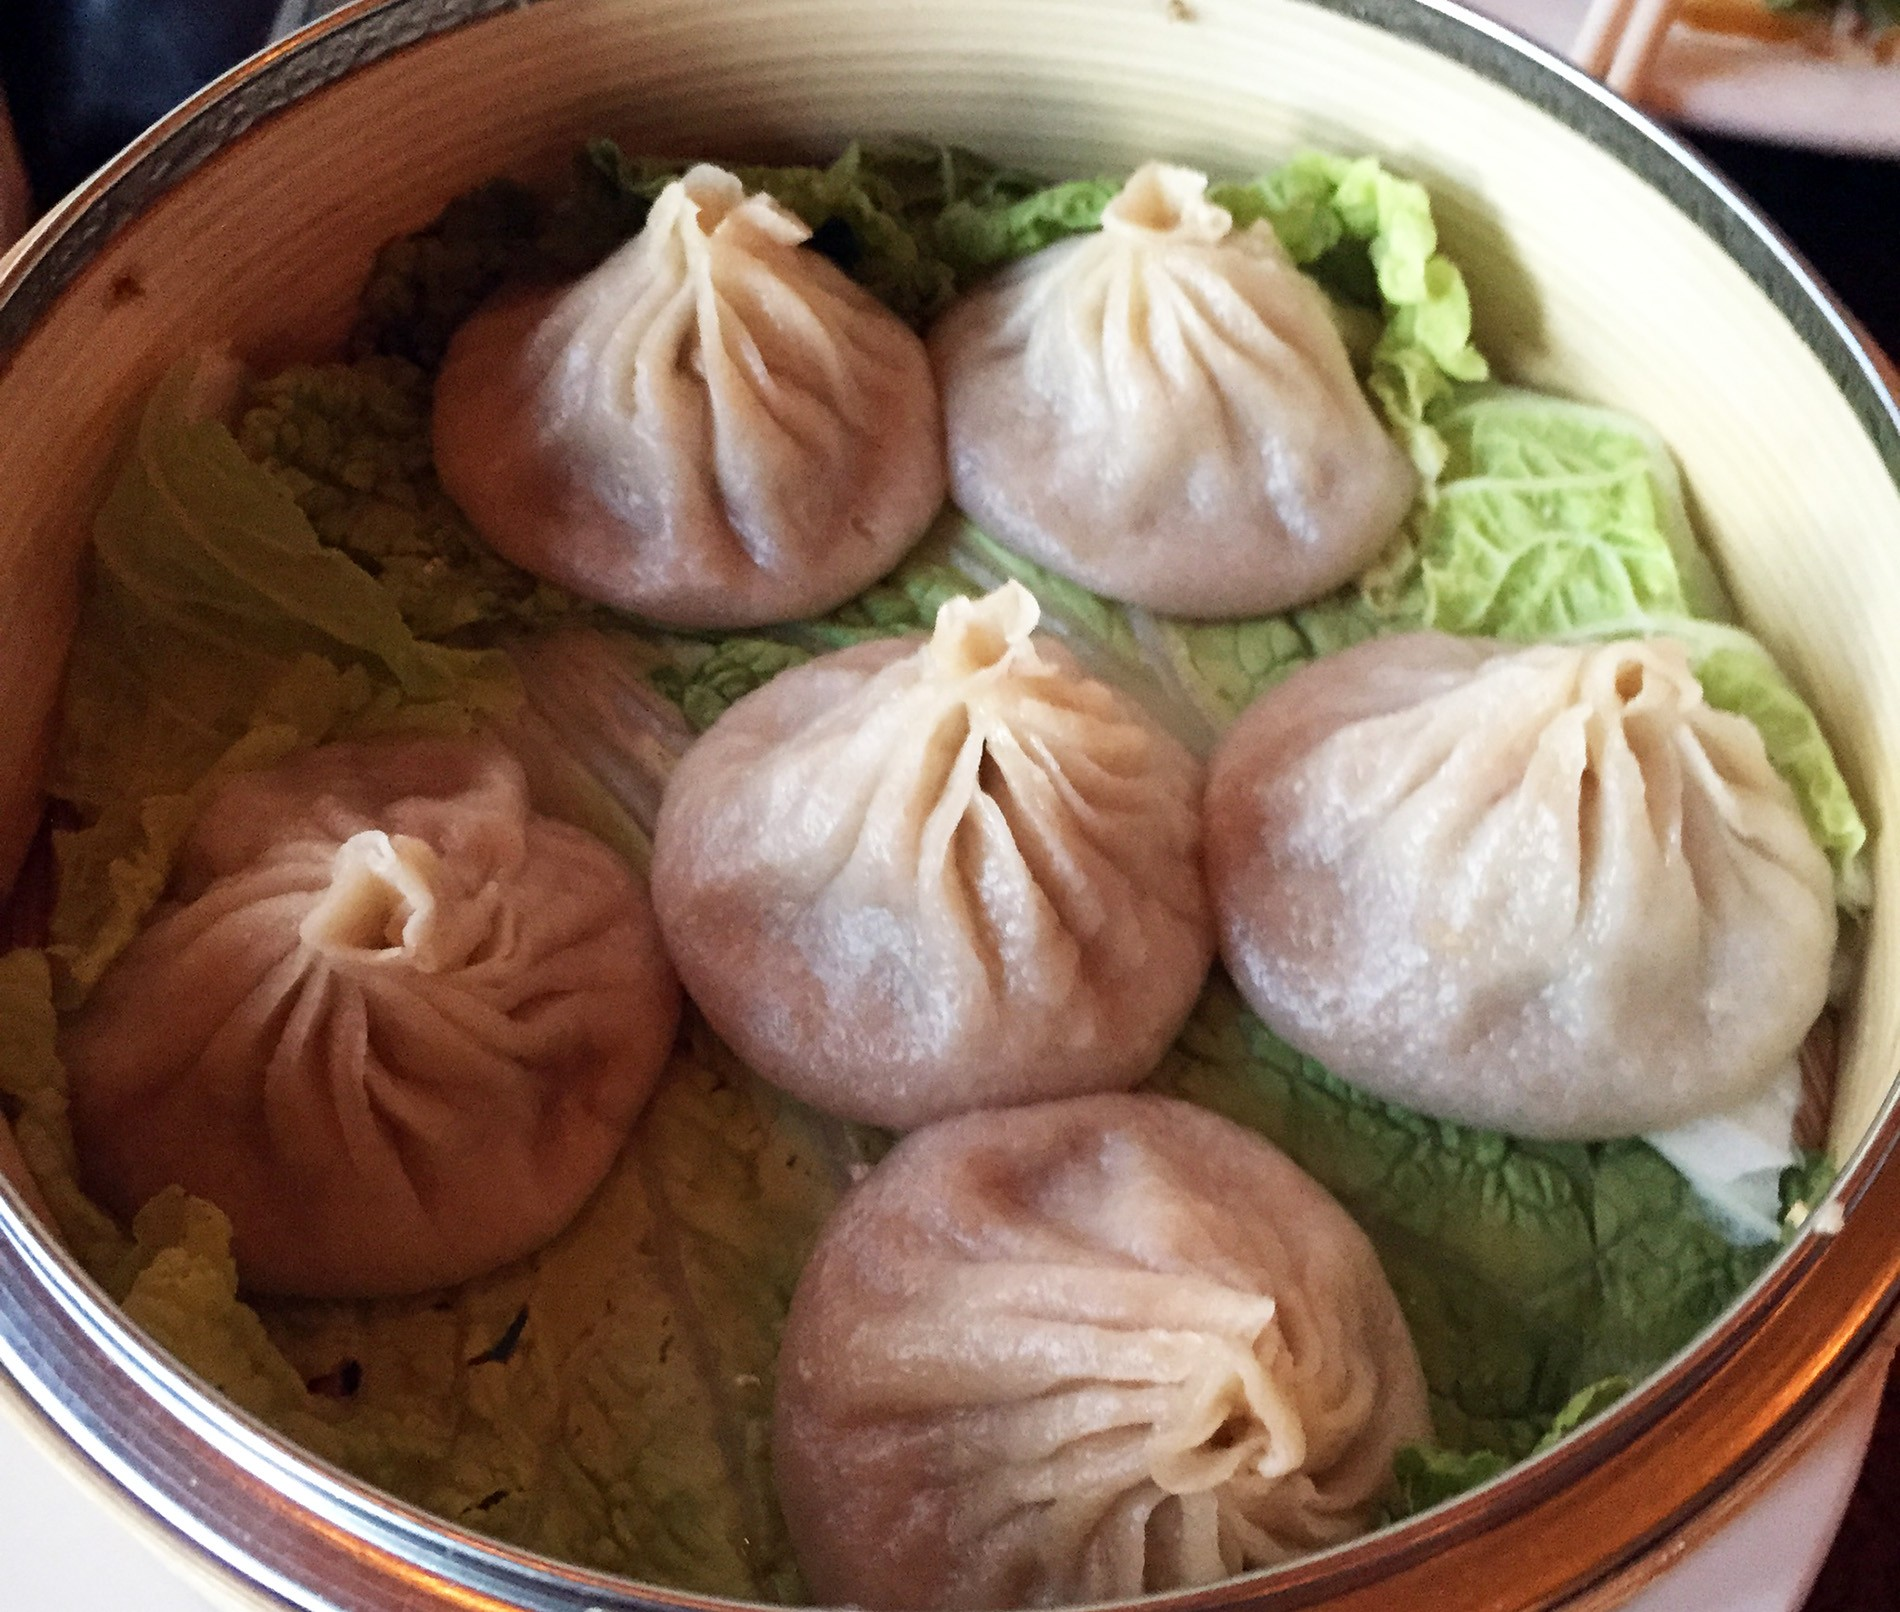 kings-cty-dumplings-feb-5-vice-eats-world